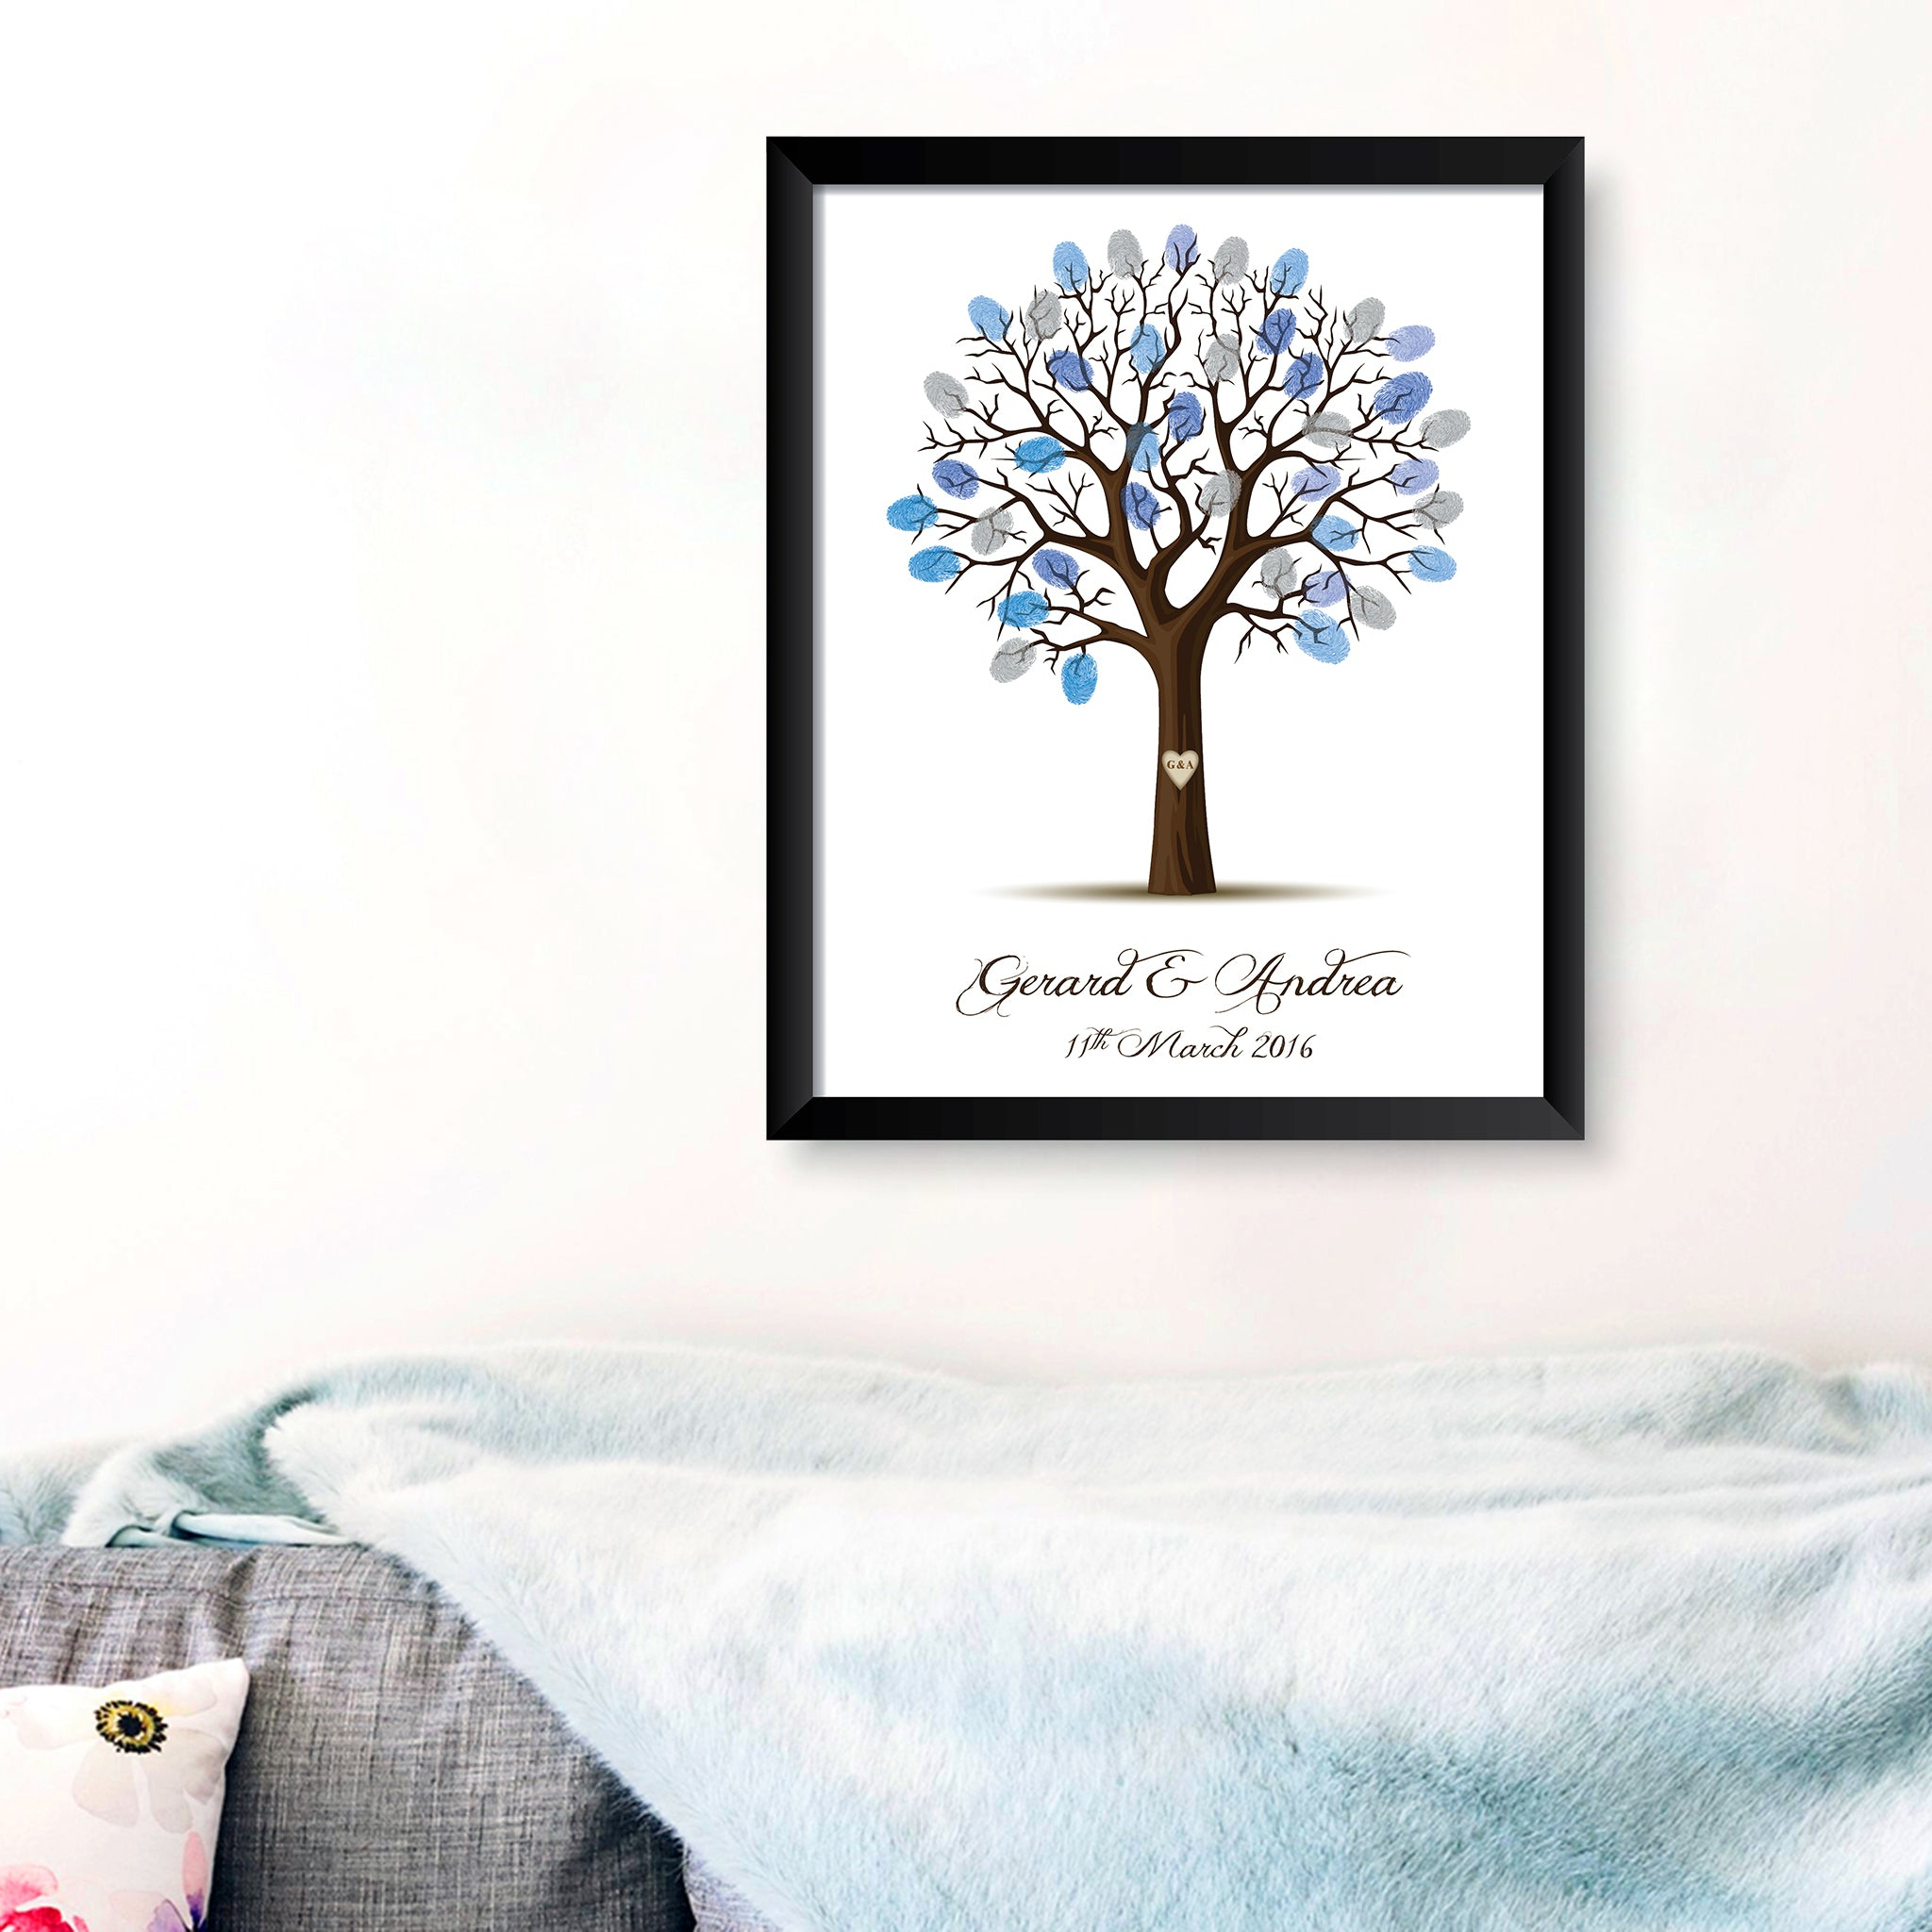 Personalised Print - Wedding Fingerprint Tree - Oregano Designs